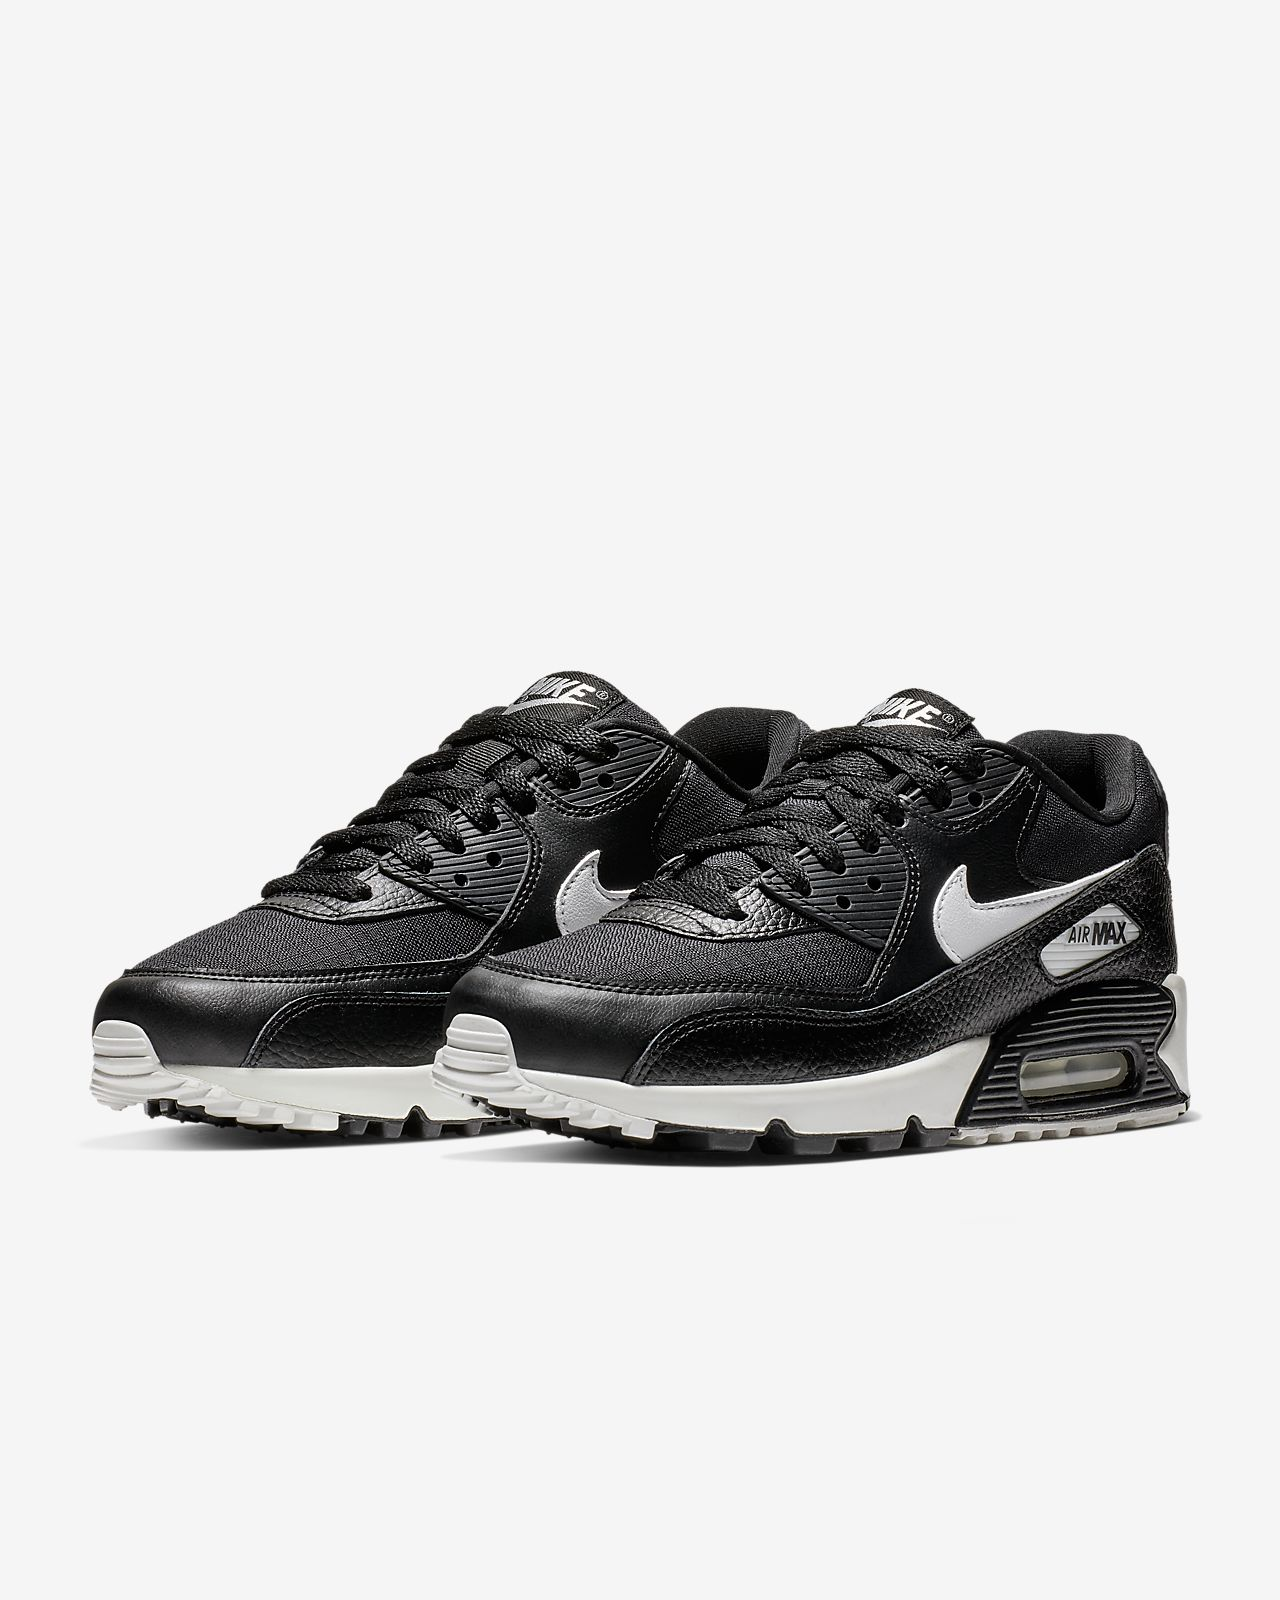 new style 84485 4074f ... Nike Air Max 90 Women s Shoe